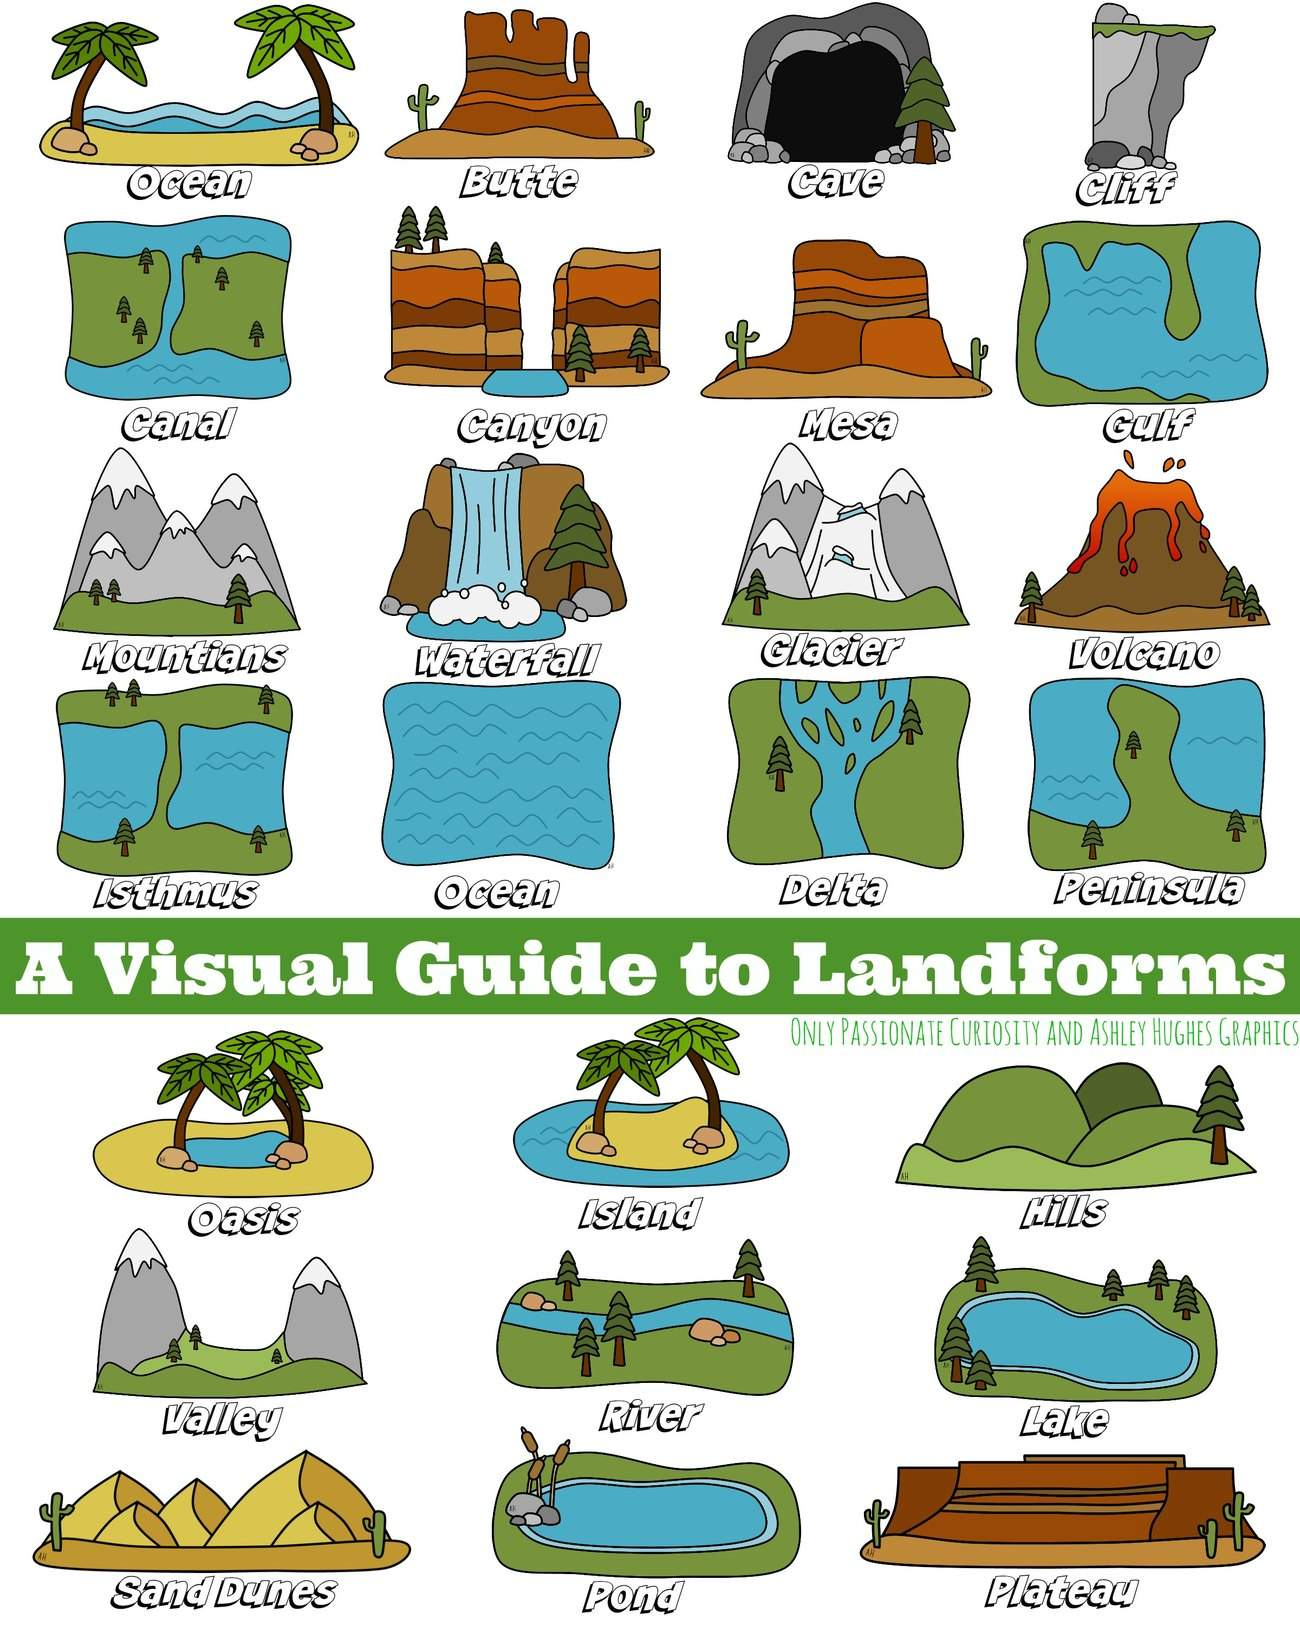 A Visual Guide To Landforms Only Passionate Curiosity